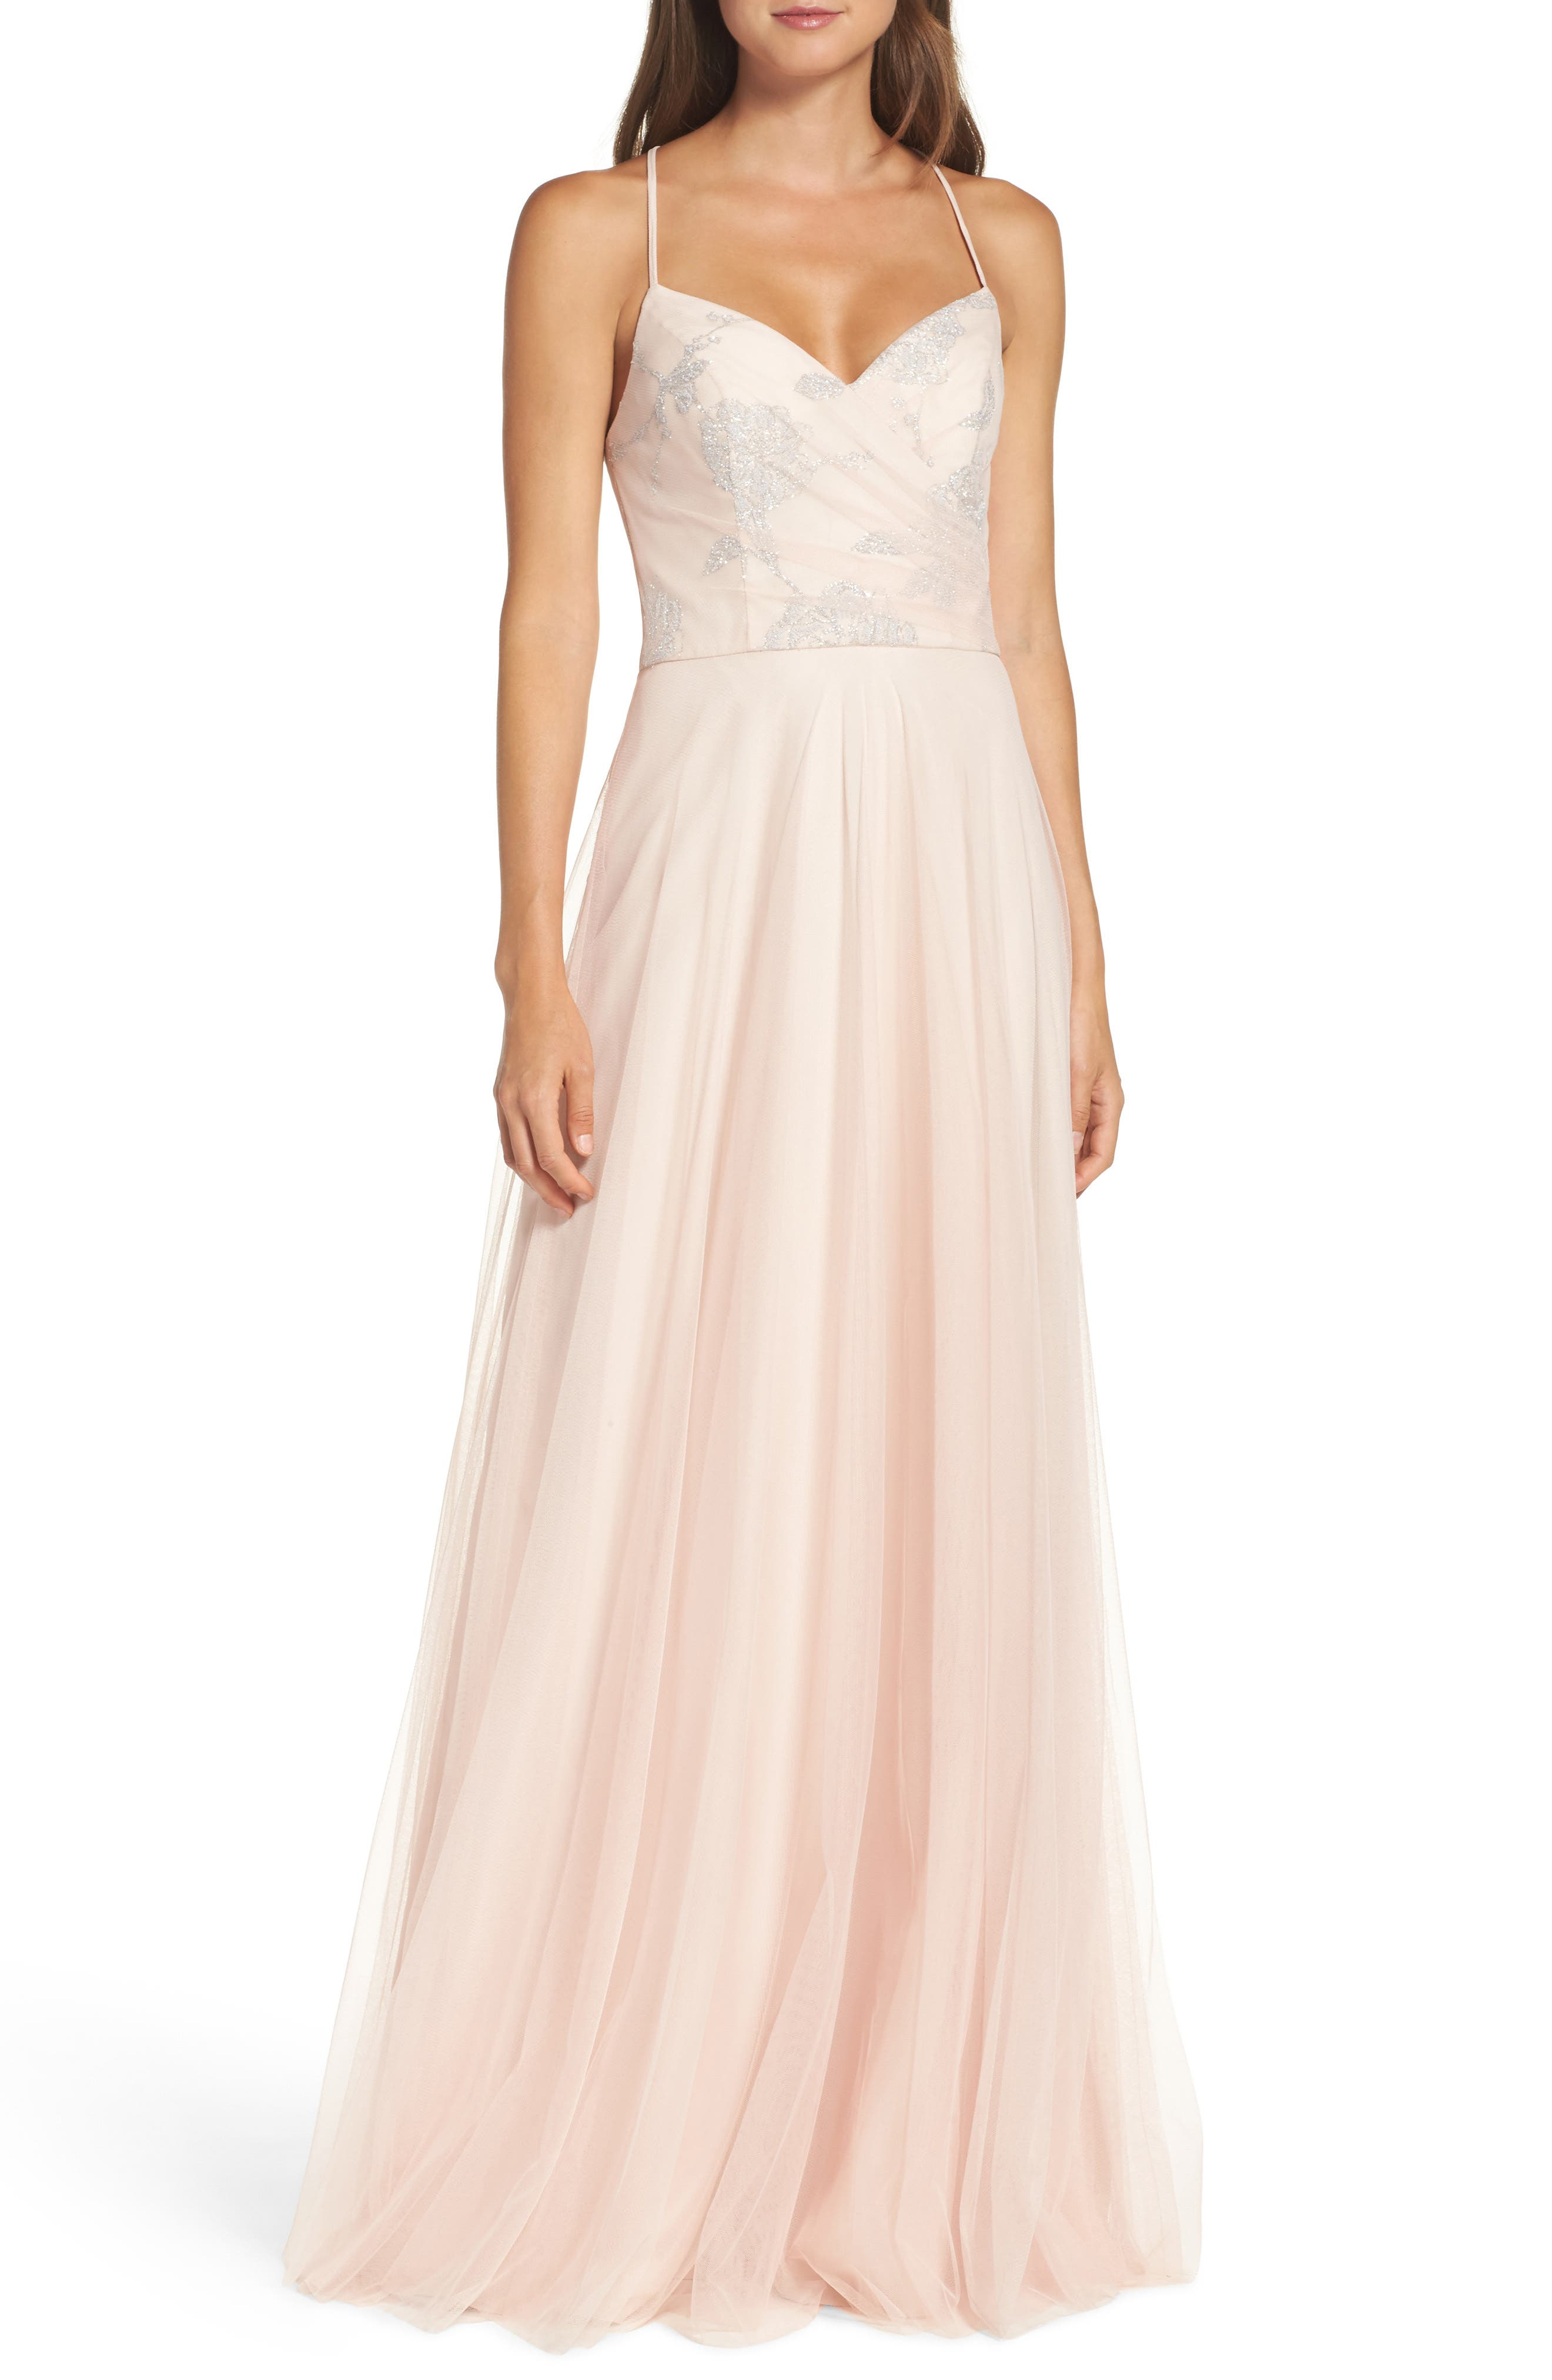 Alternate Image 1 Selected - Hayley Paige Occasions Embellished Bodice Net Halter Gown